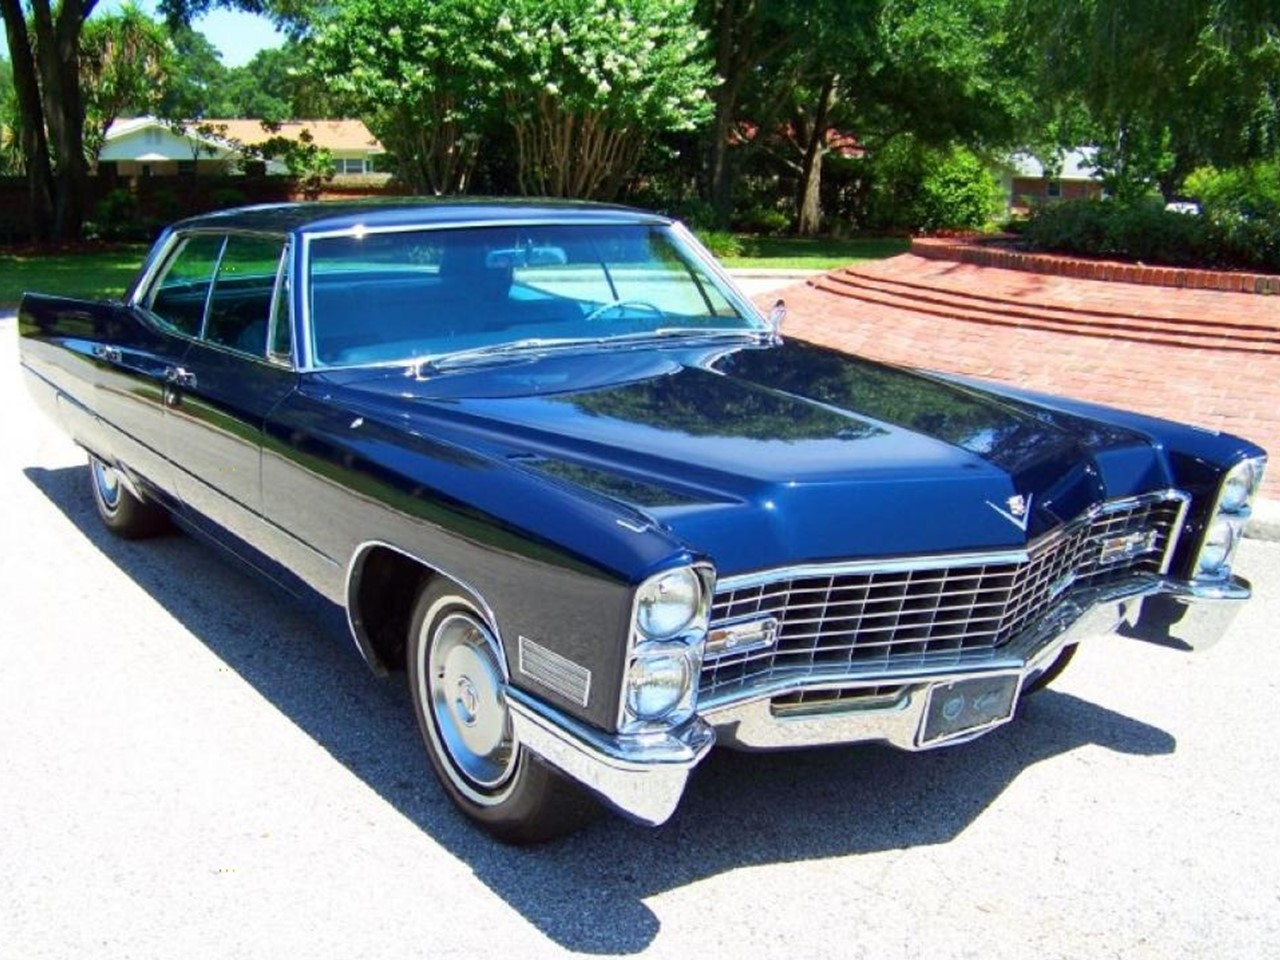 Fresh Metal: 1967 Cadillac Calais | NotoriousLuxury